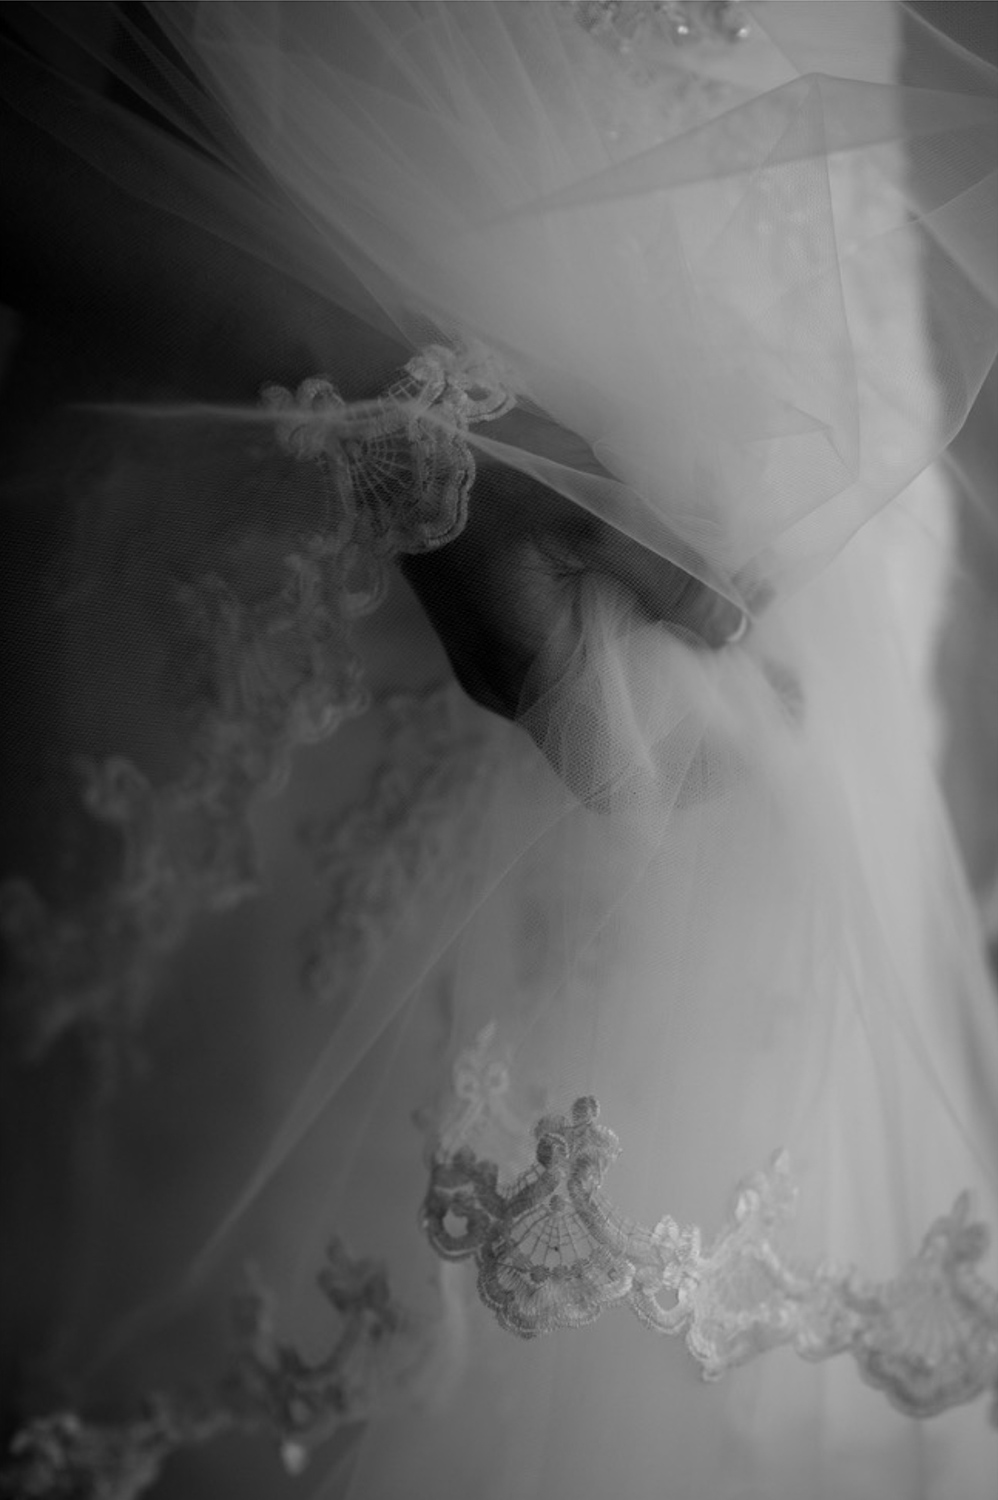 A bride holds onto her veil before the wedding ceremony.